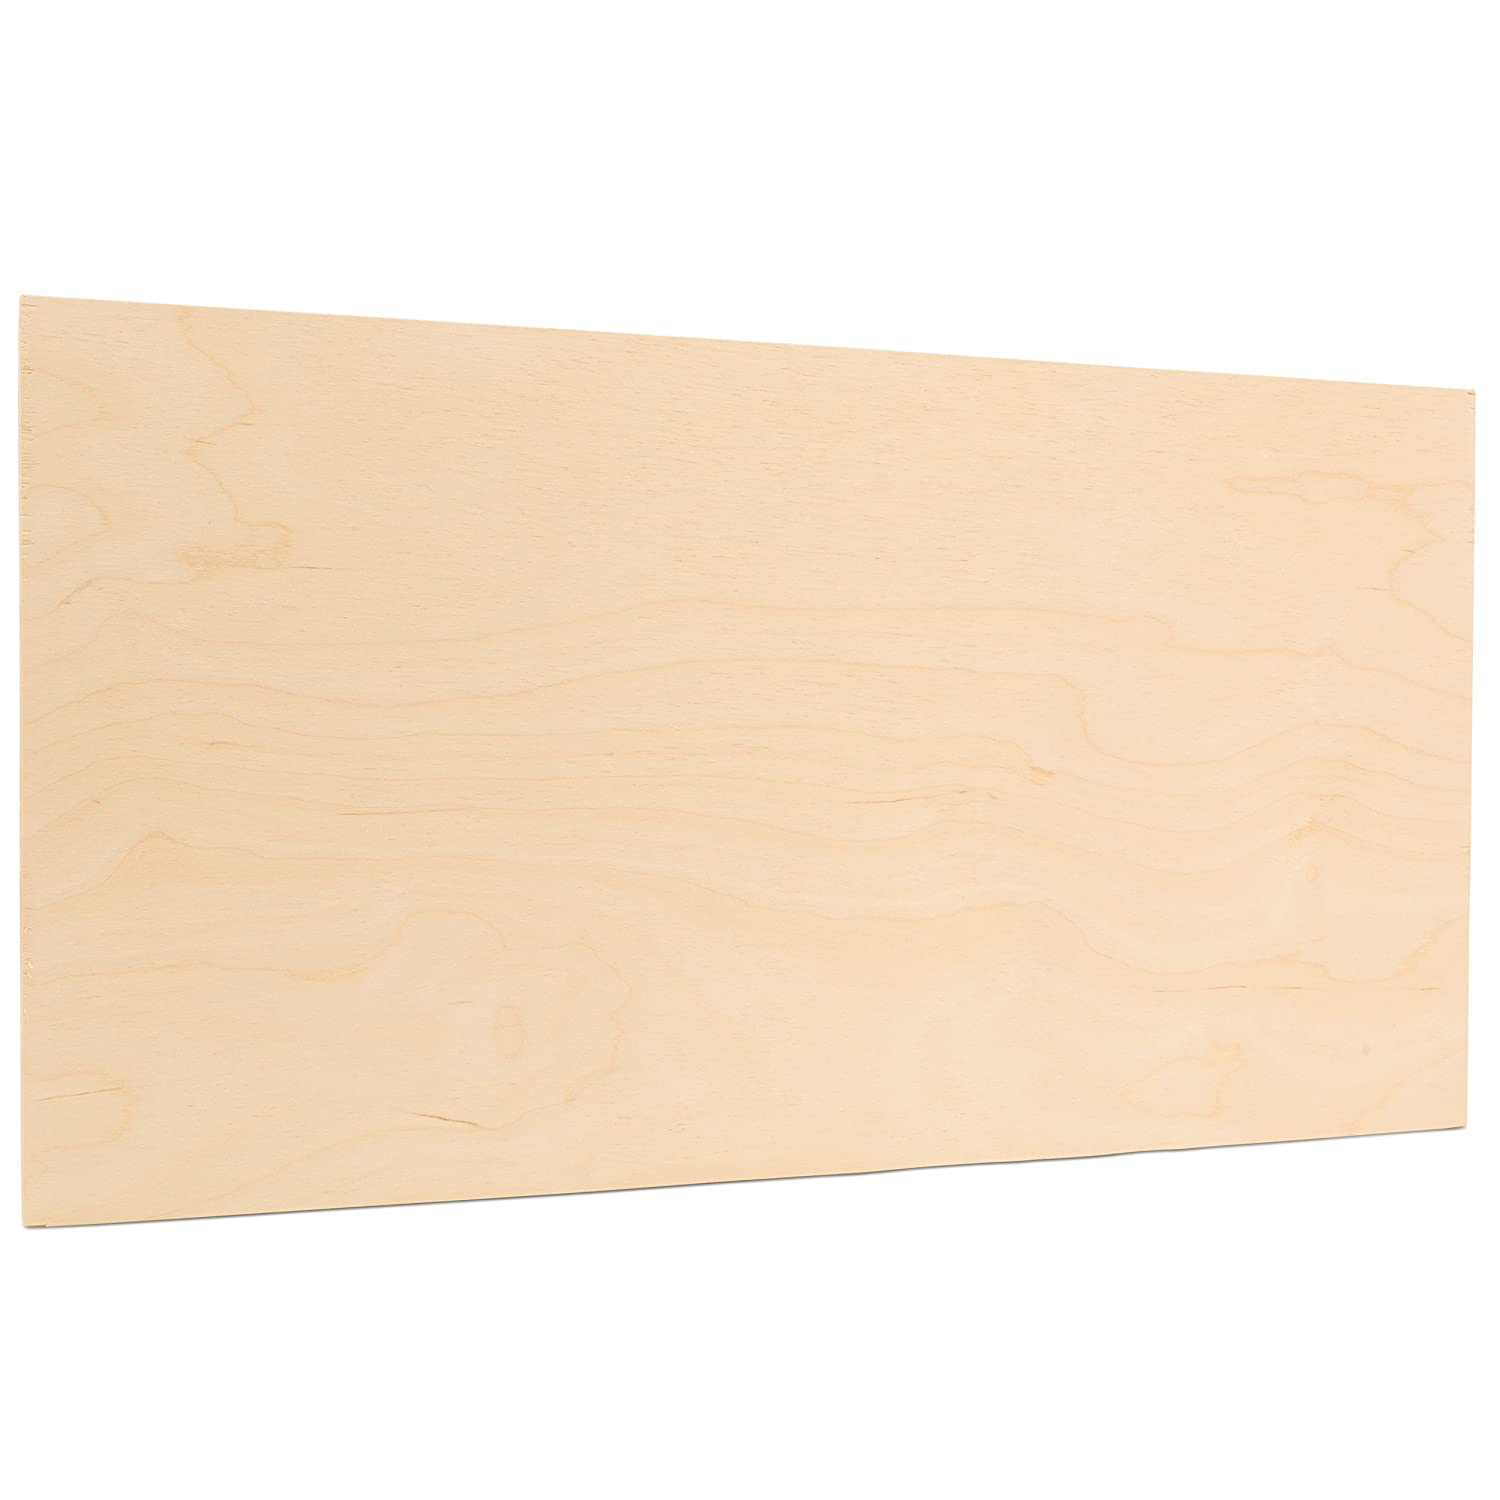 5 mm 1/4 x 12 x 24 Premium Baltic Birch Plywood - B/BB Grade - 6 Flat Sheets By Woodpeckers 4336907601